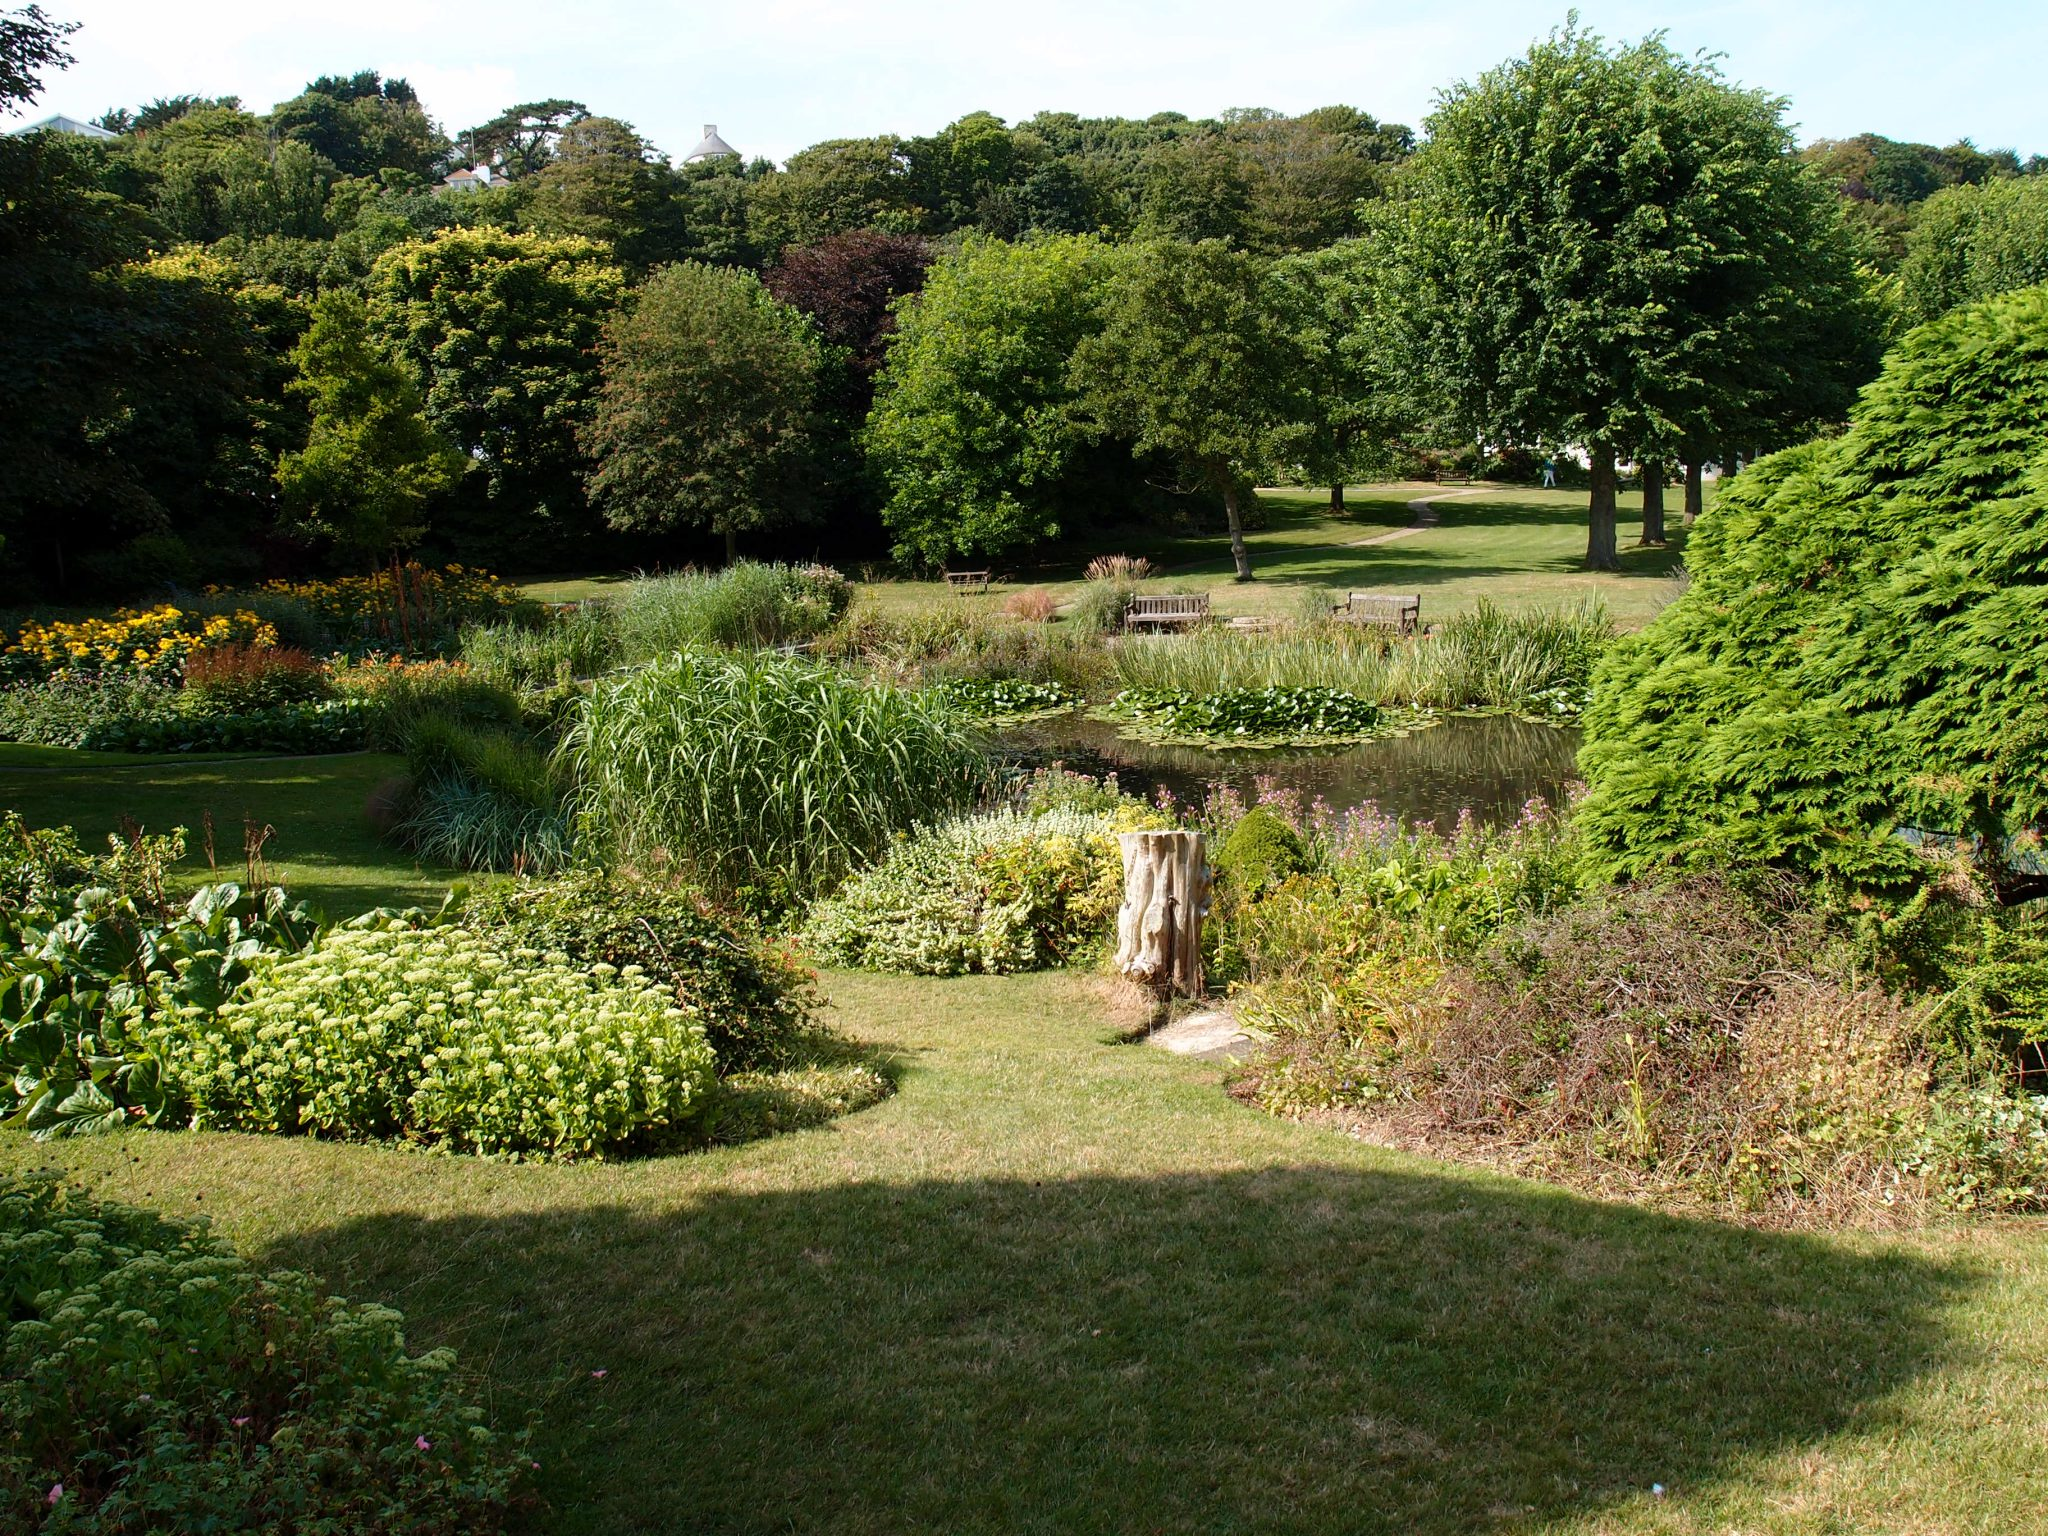 View of the pond, from the slopes of the arboretum.